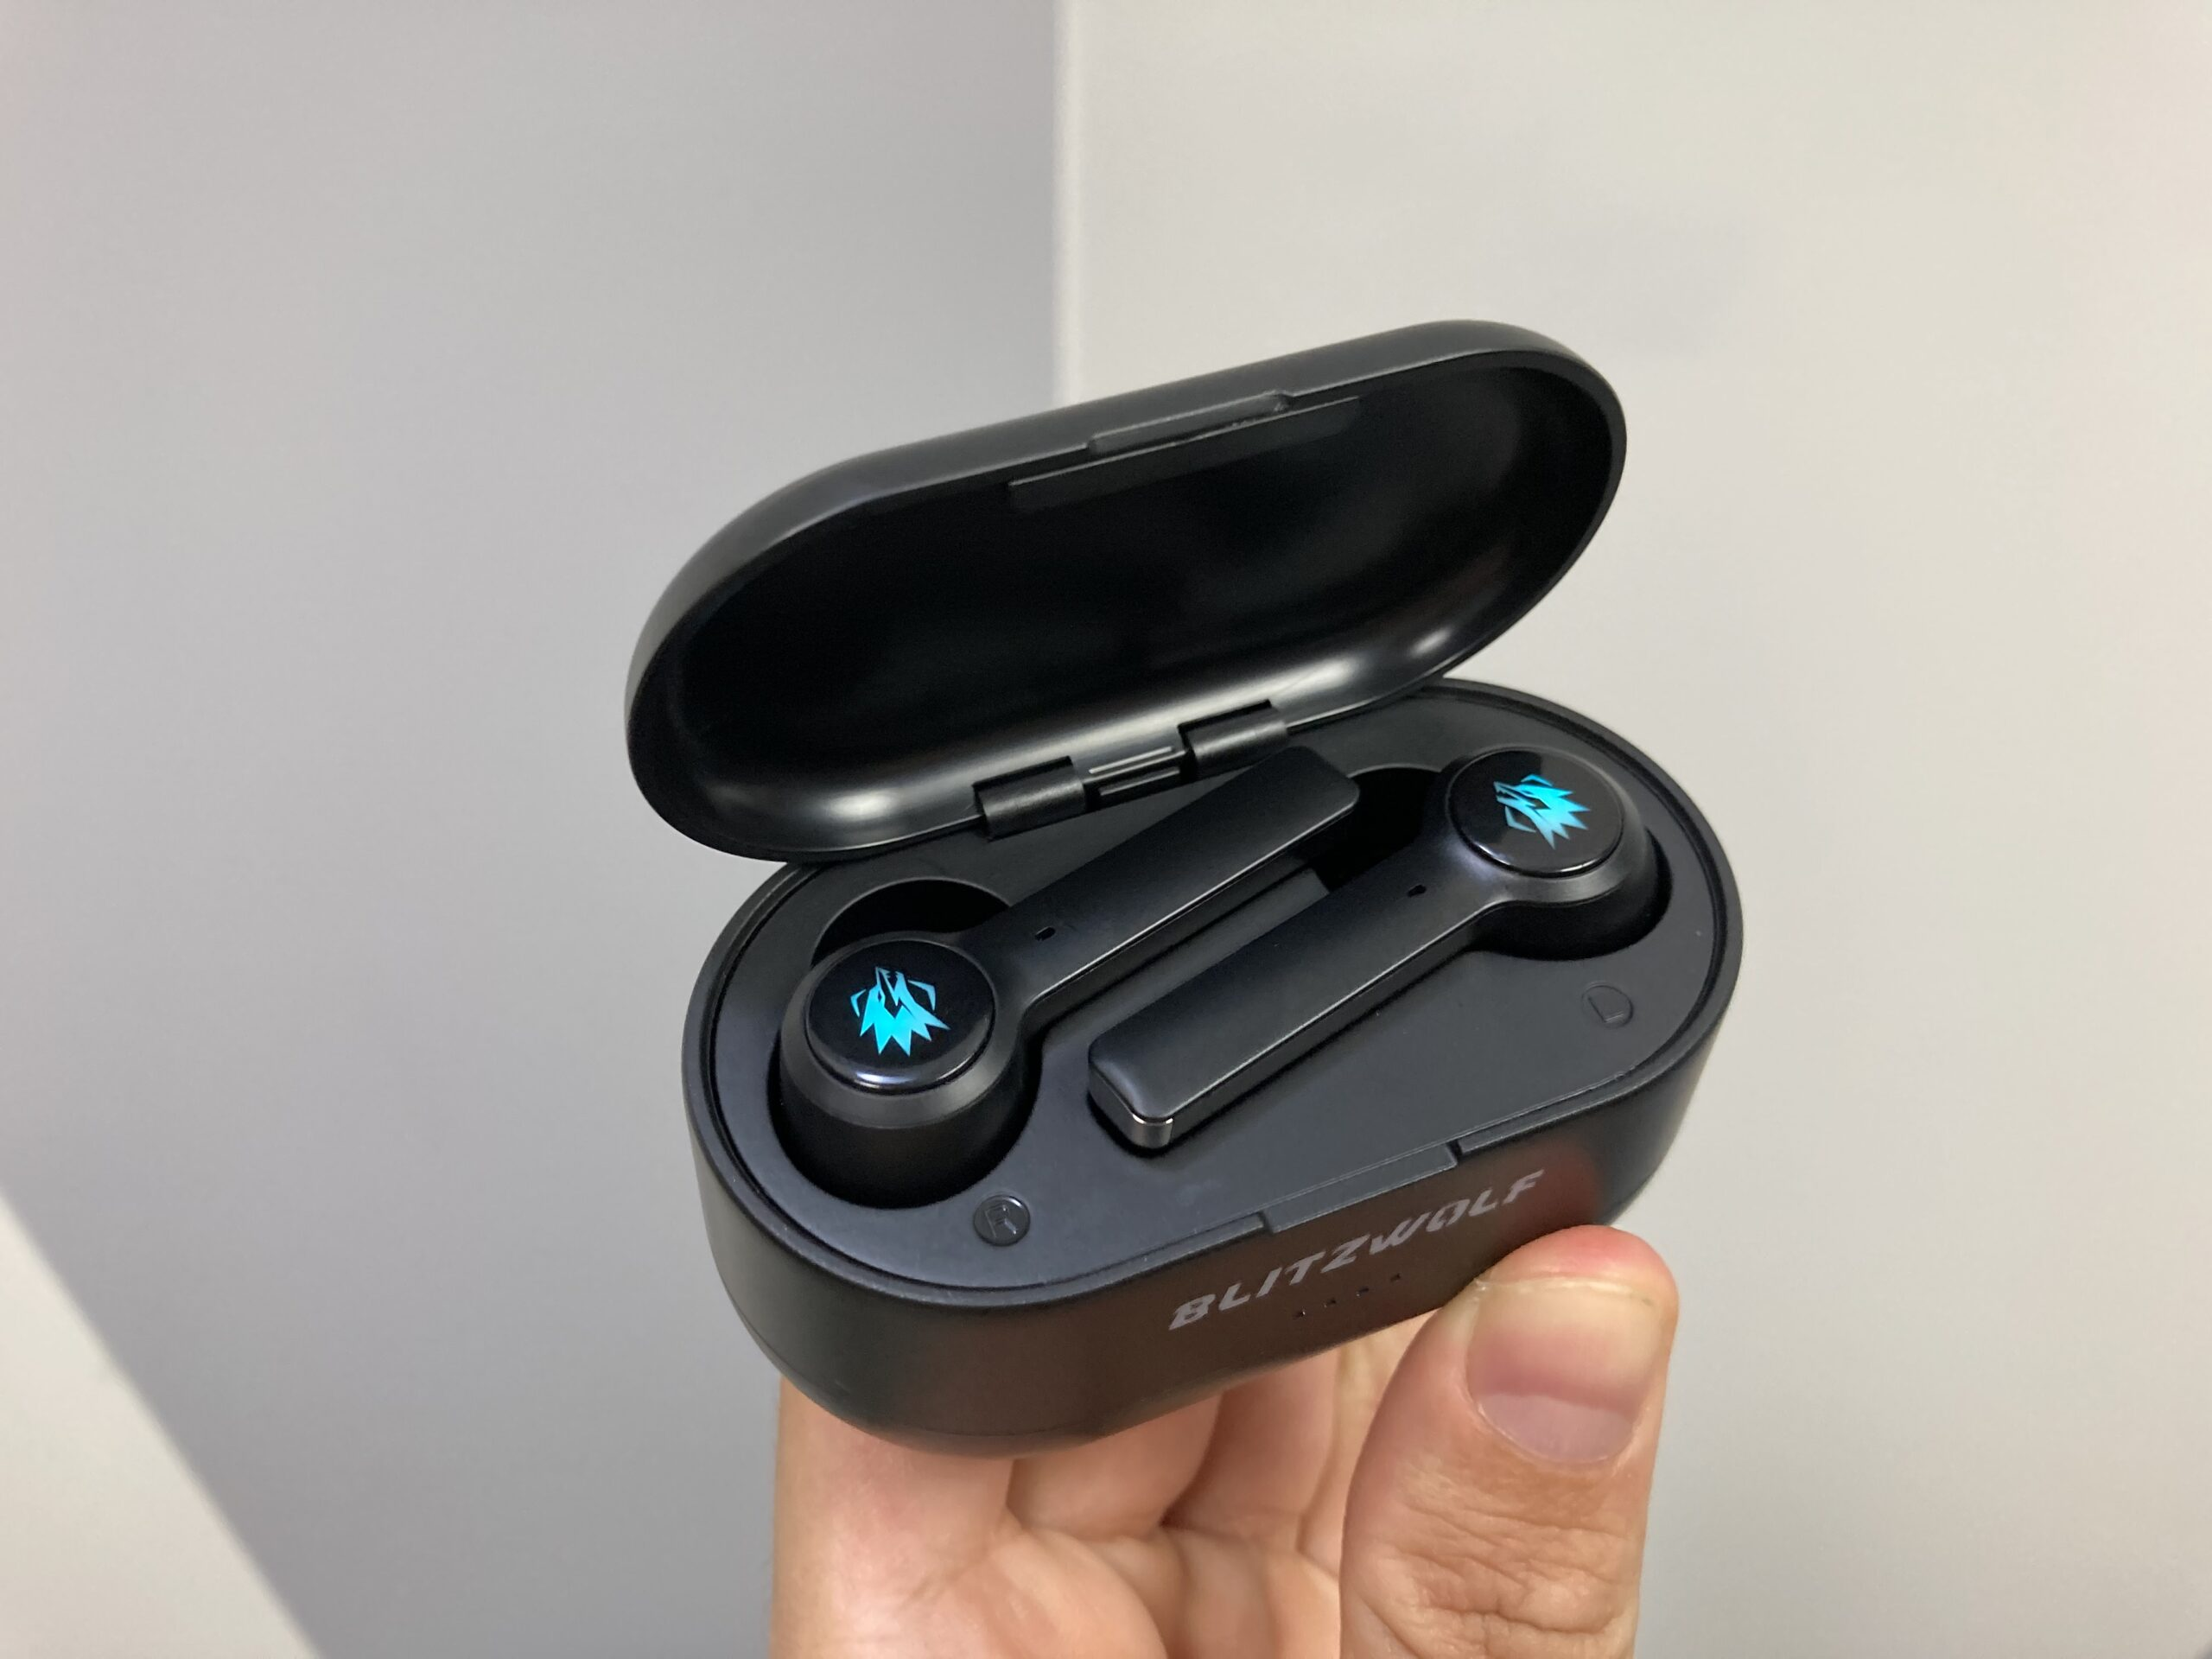 The Blitzwolf BW-FLB2 Review!